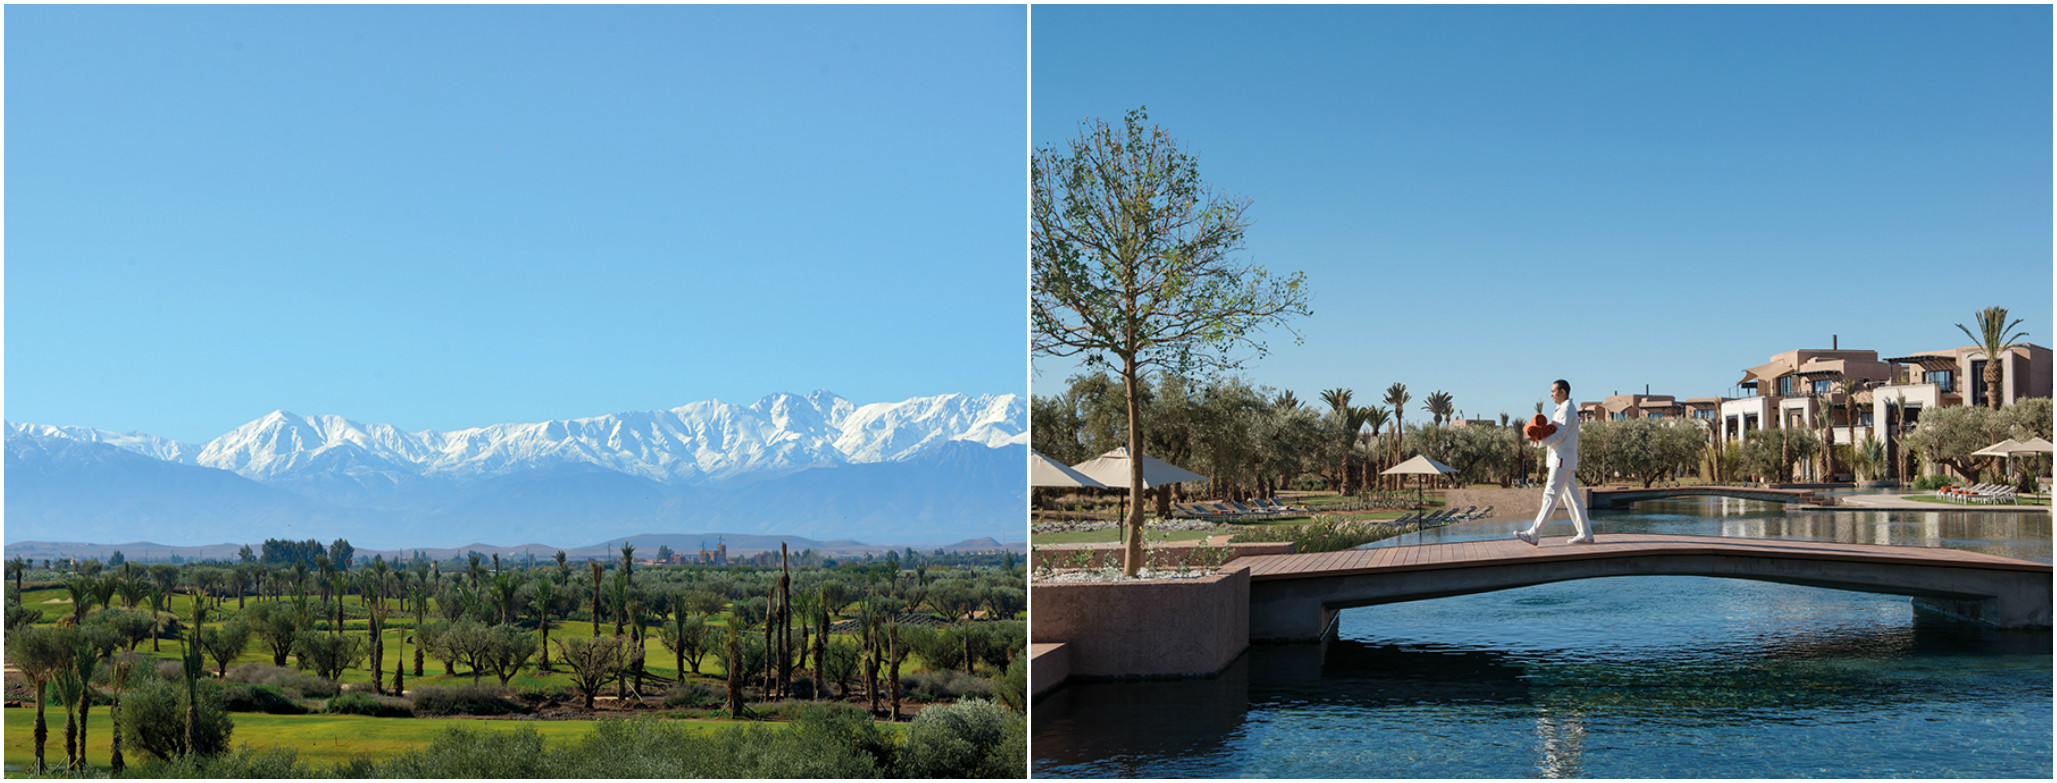 Royal palm marrakech among the leading hotels of the world for The finest hotels of the world